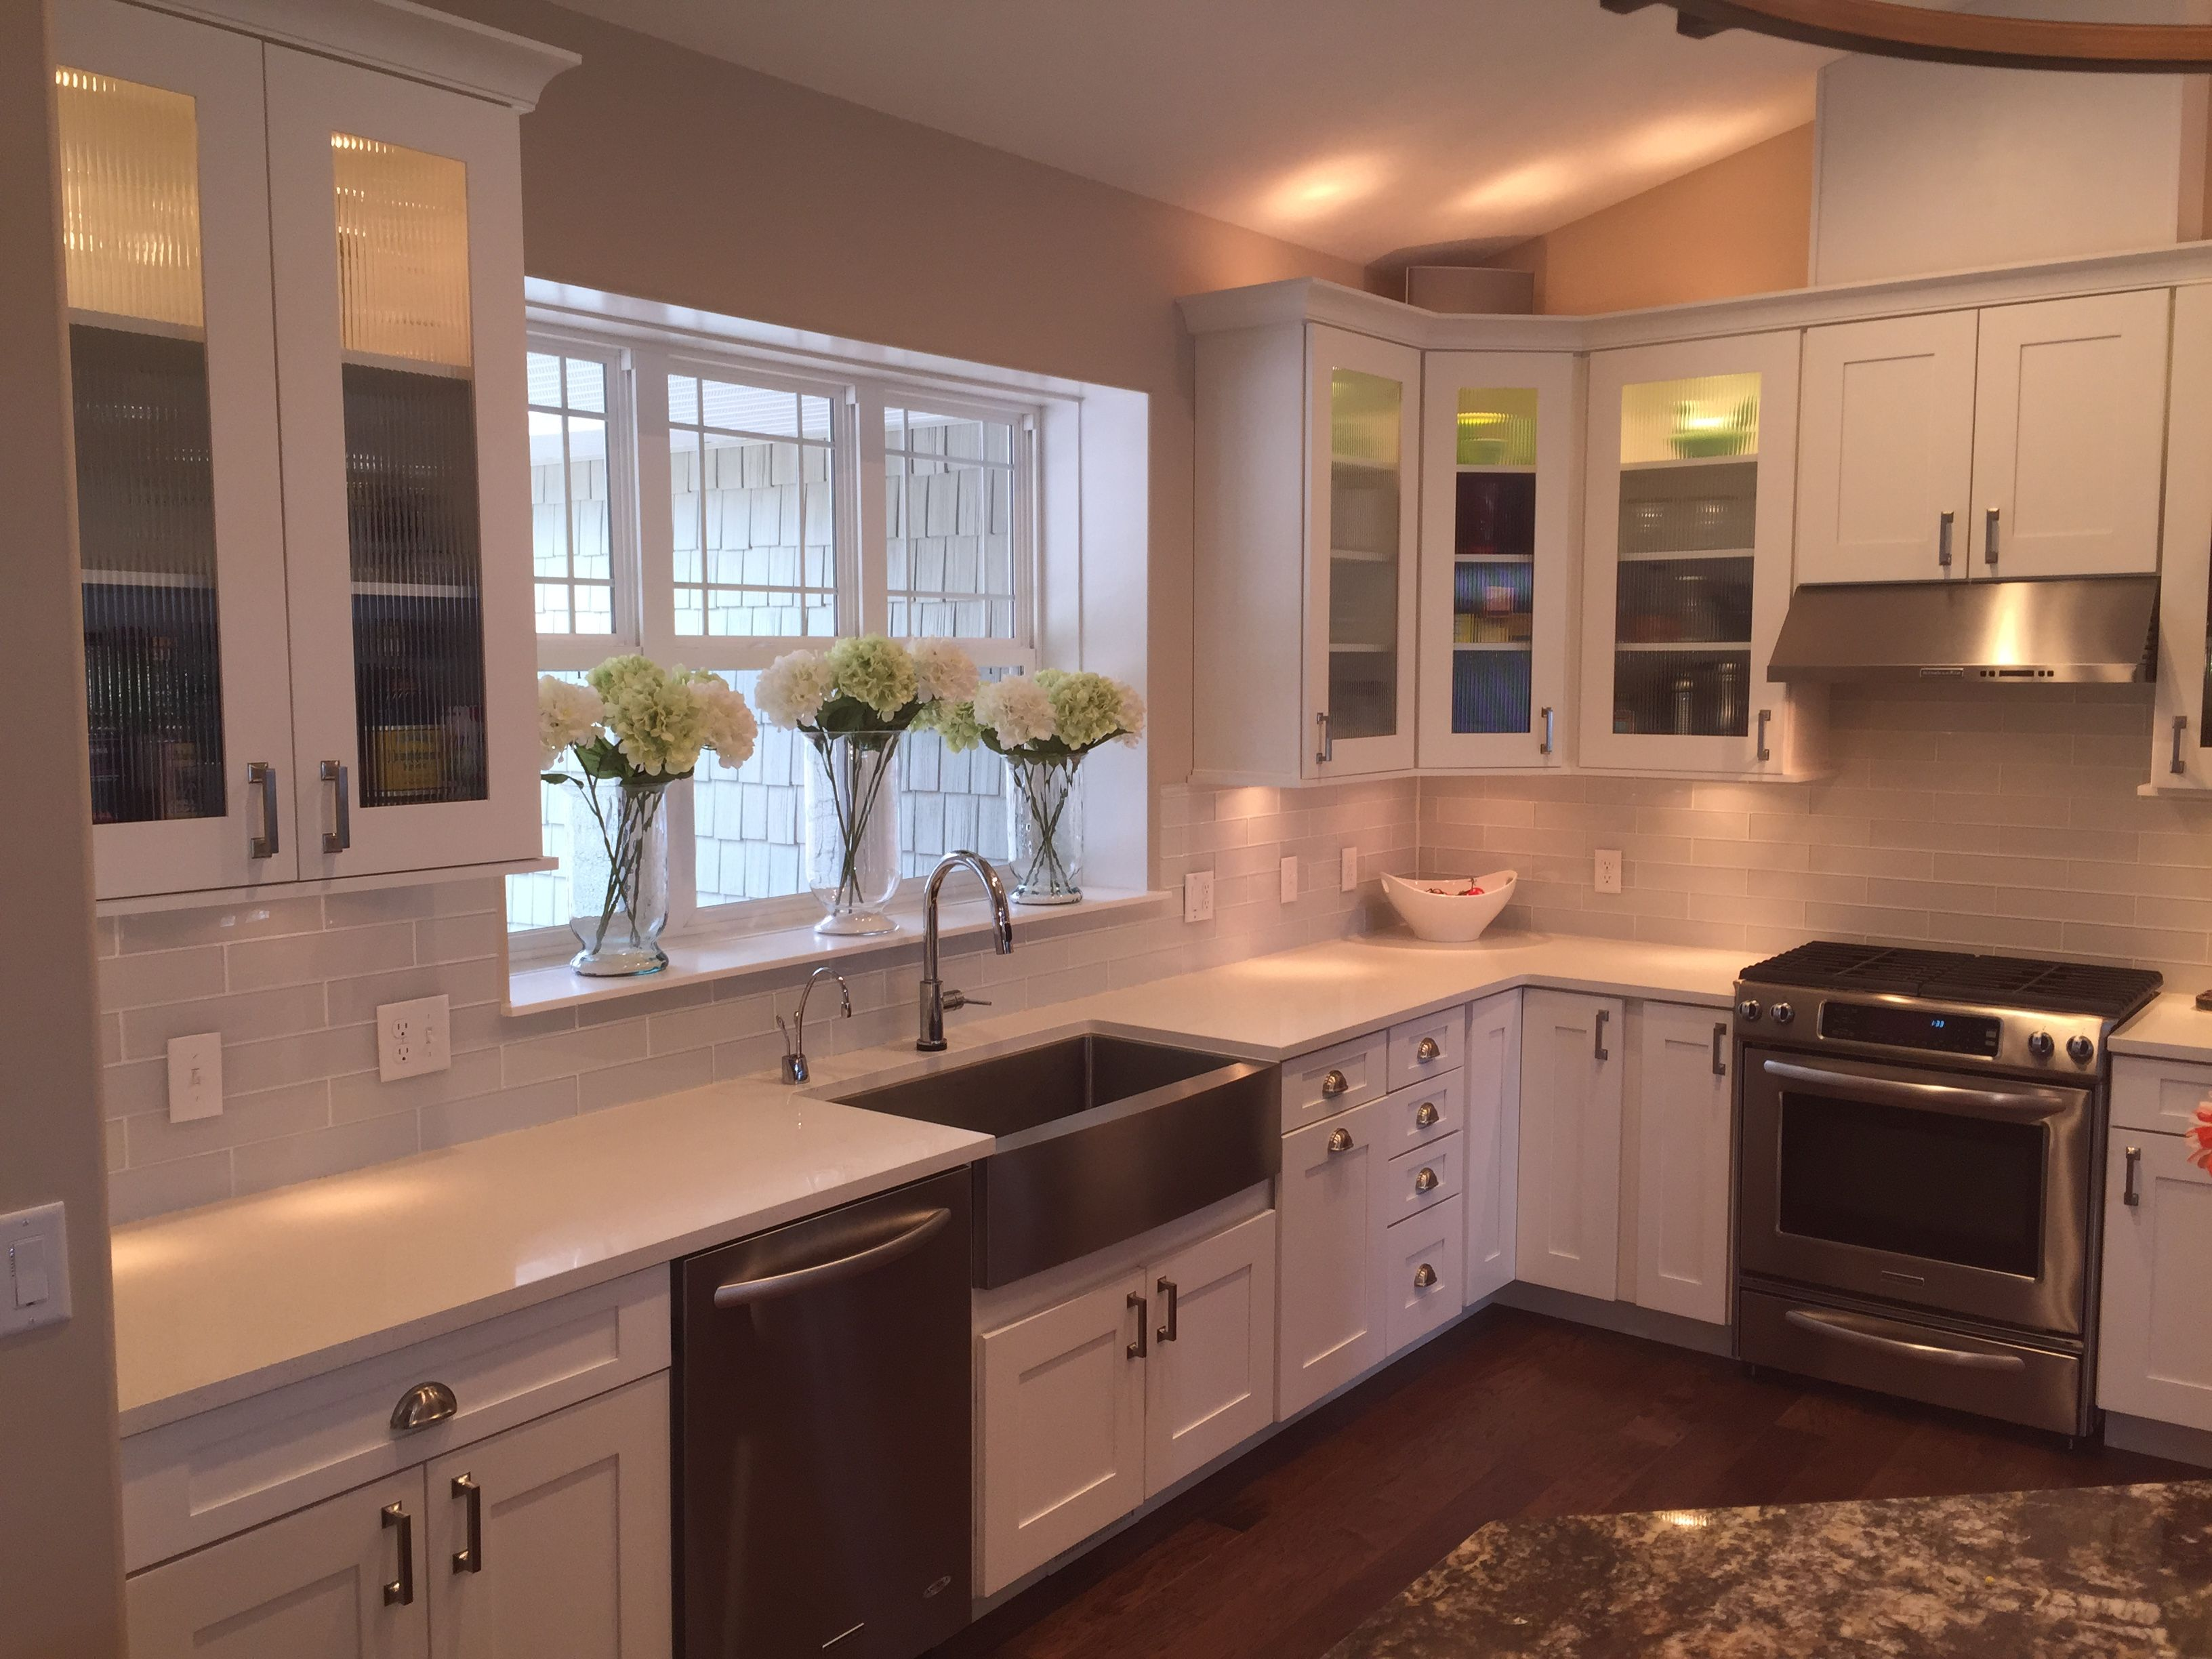 Hickory Shaker Style Kitchen Cabinets Tile Backsplash For Love The Big Window And Deep Sill White